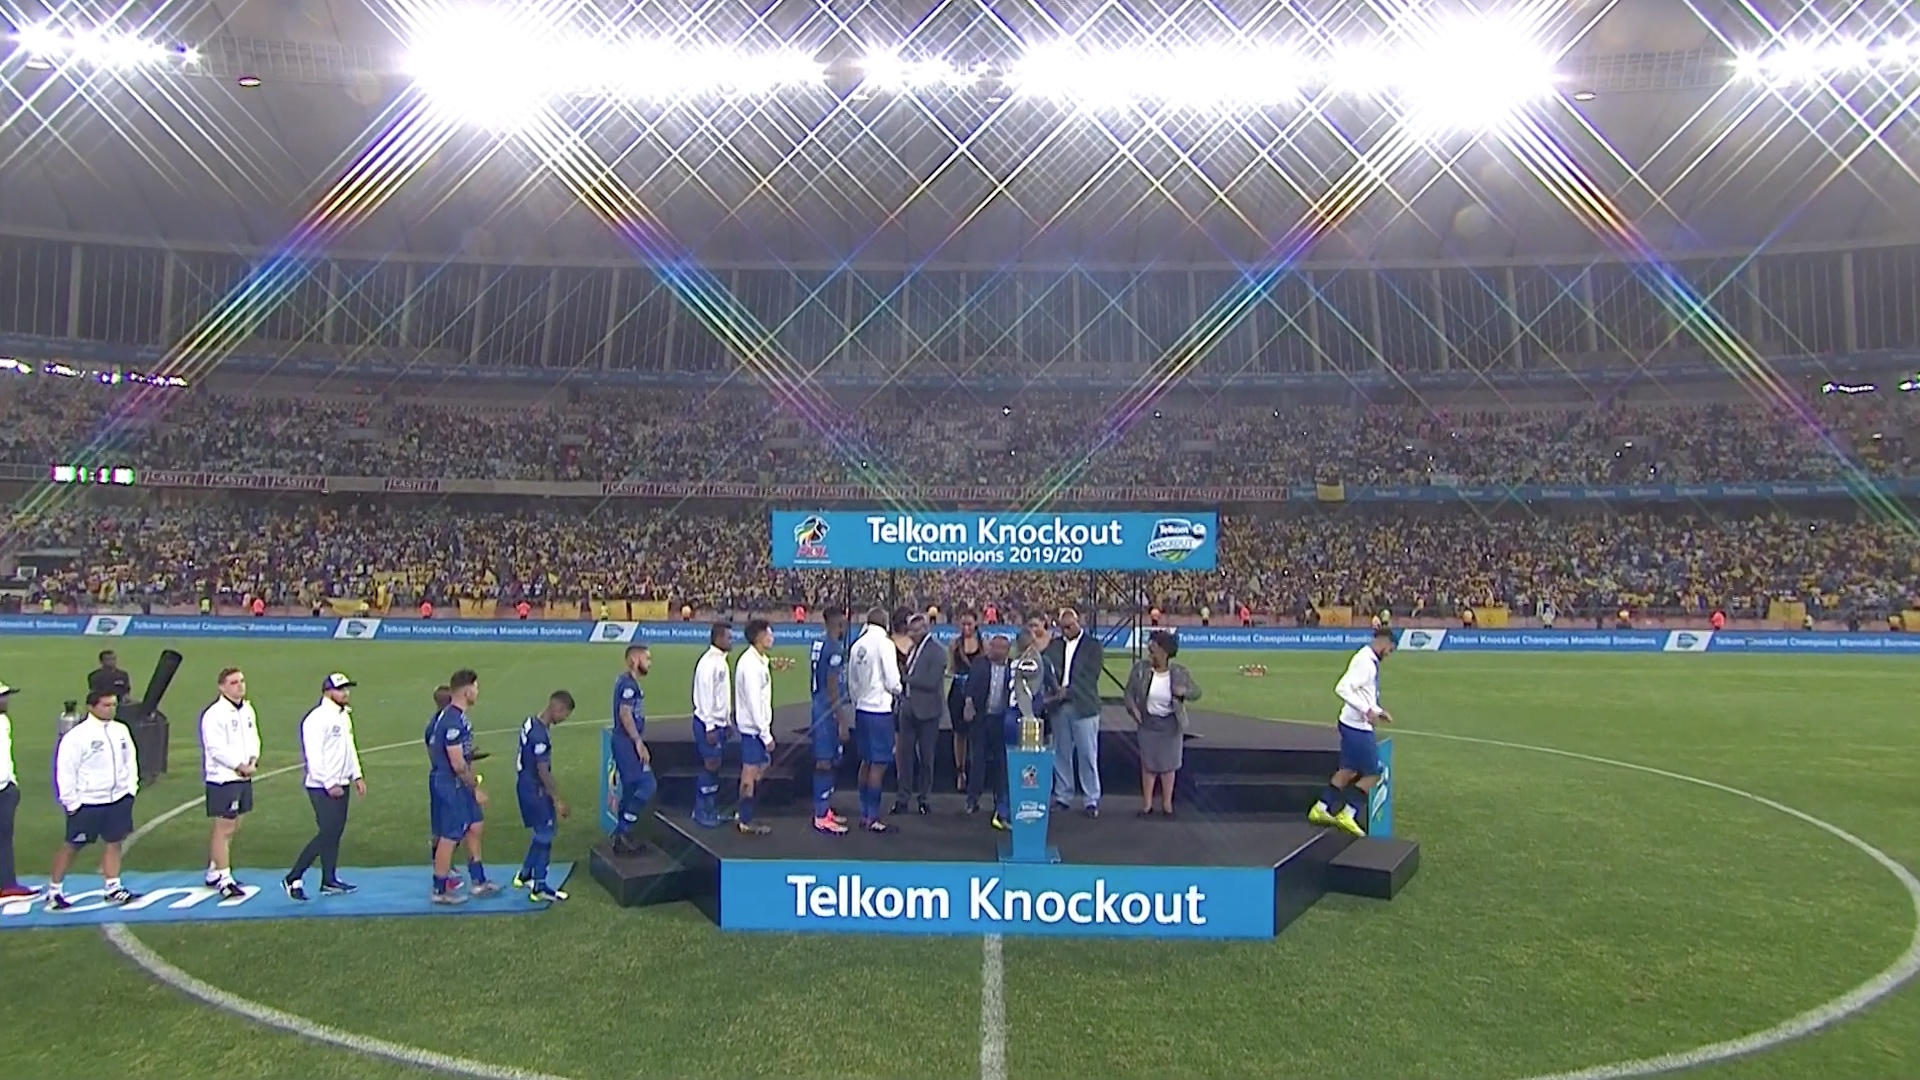 Telkom Knockout | Maritzburg v Sundowns | Runners-Up medals for Maritzburg Maritzburg